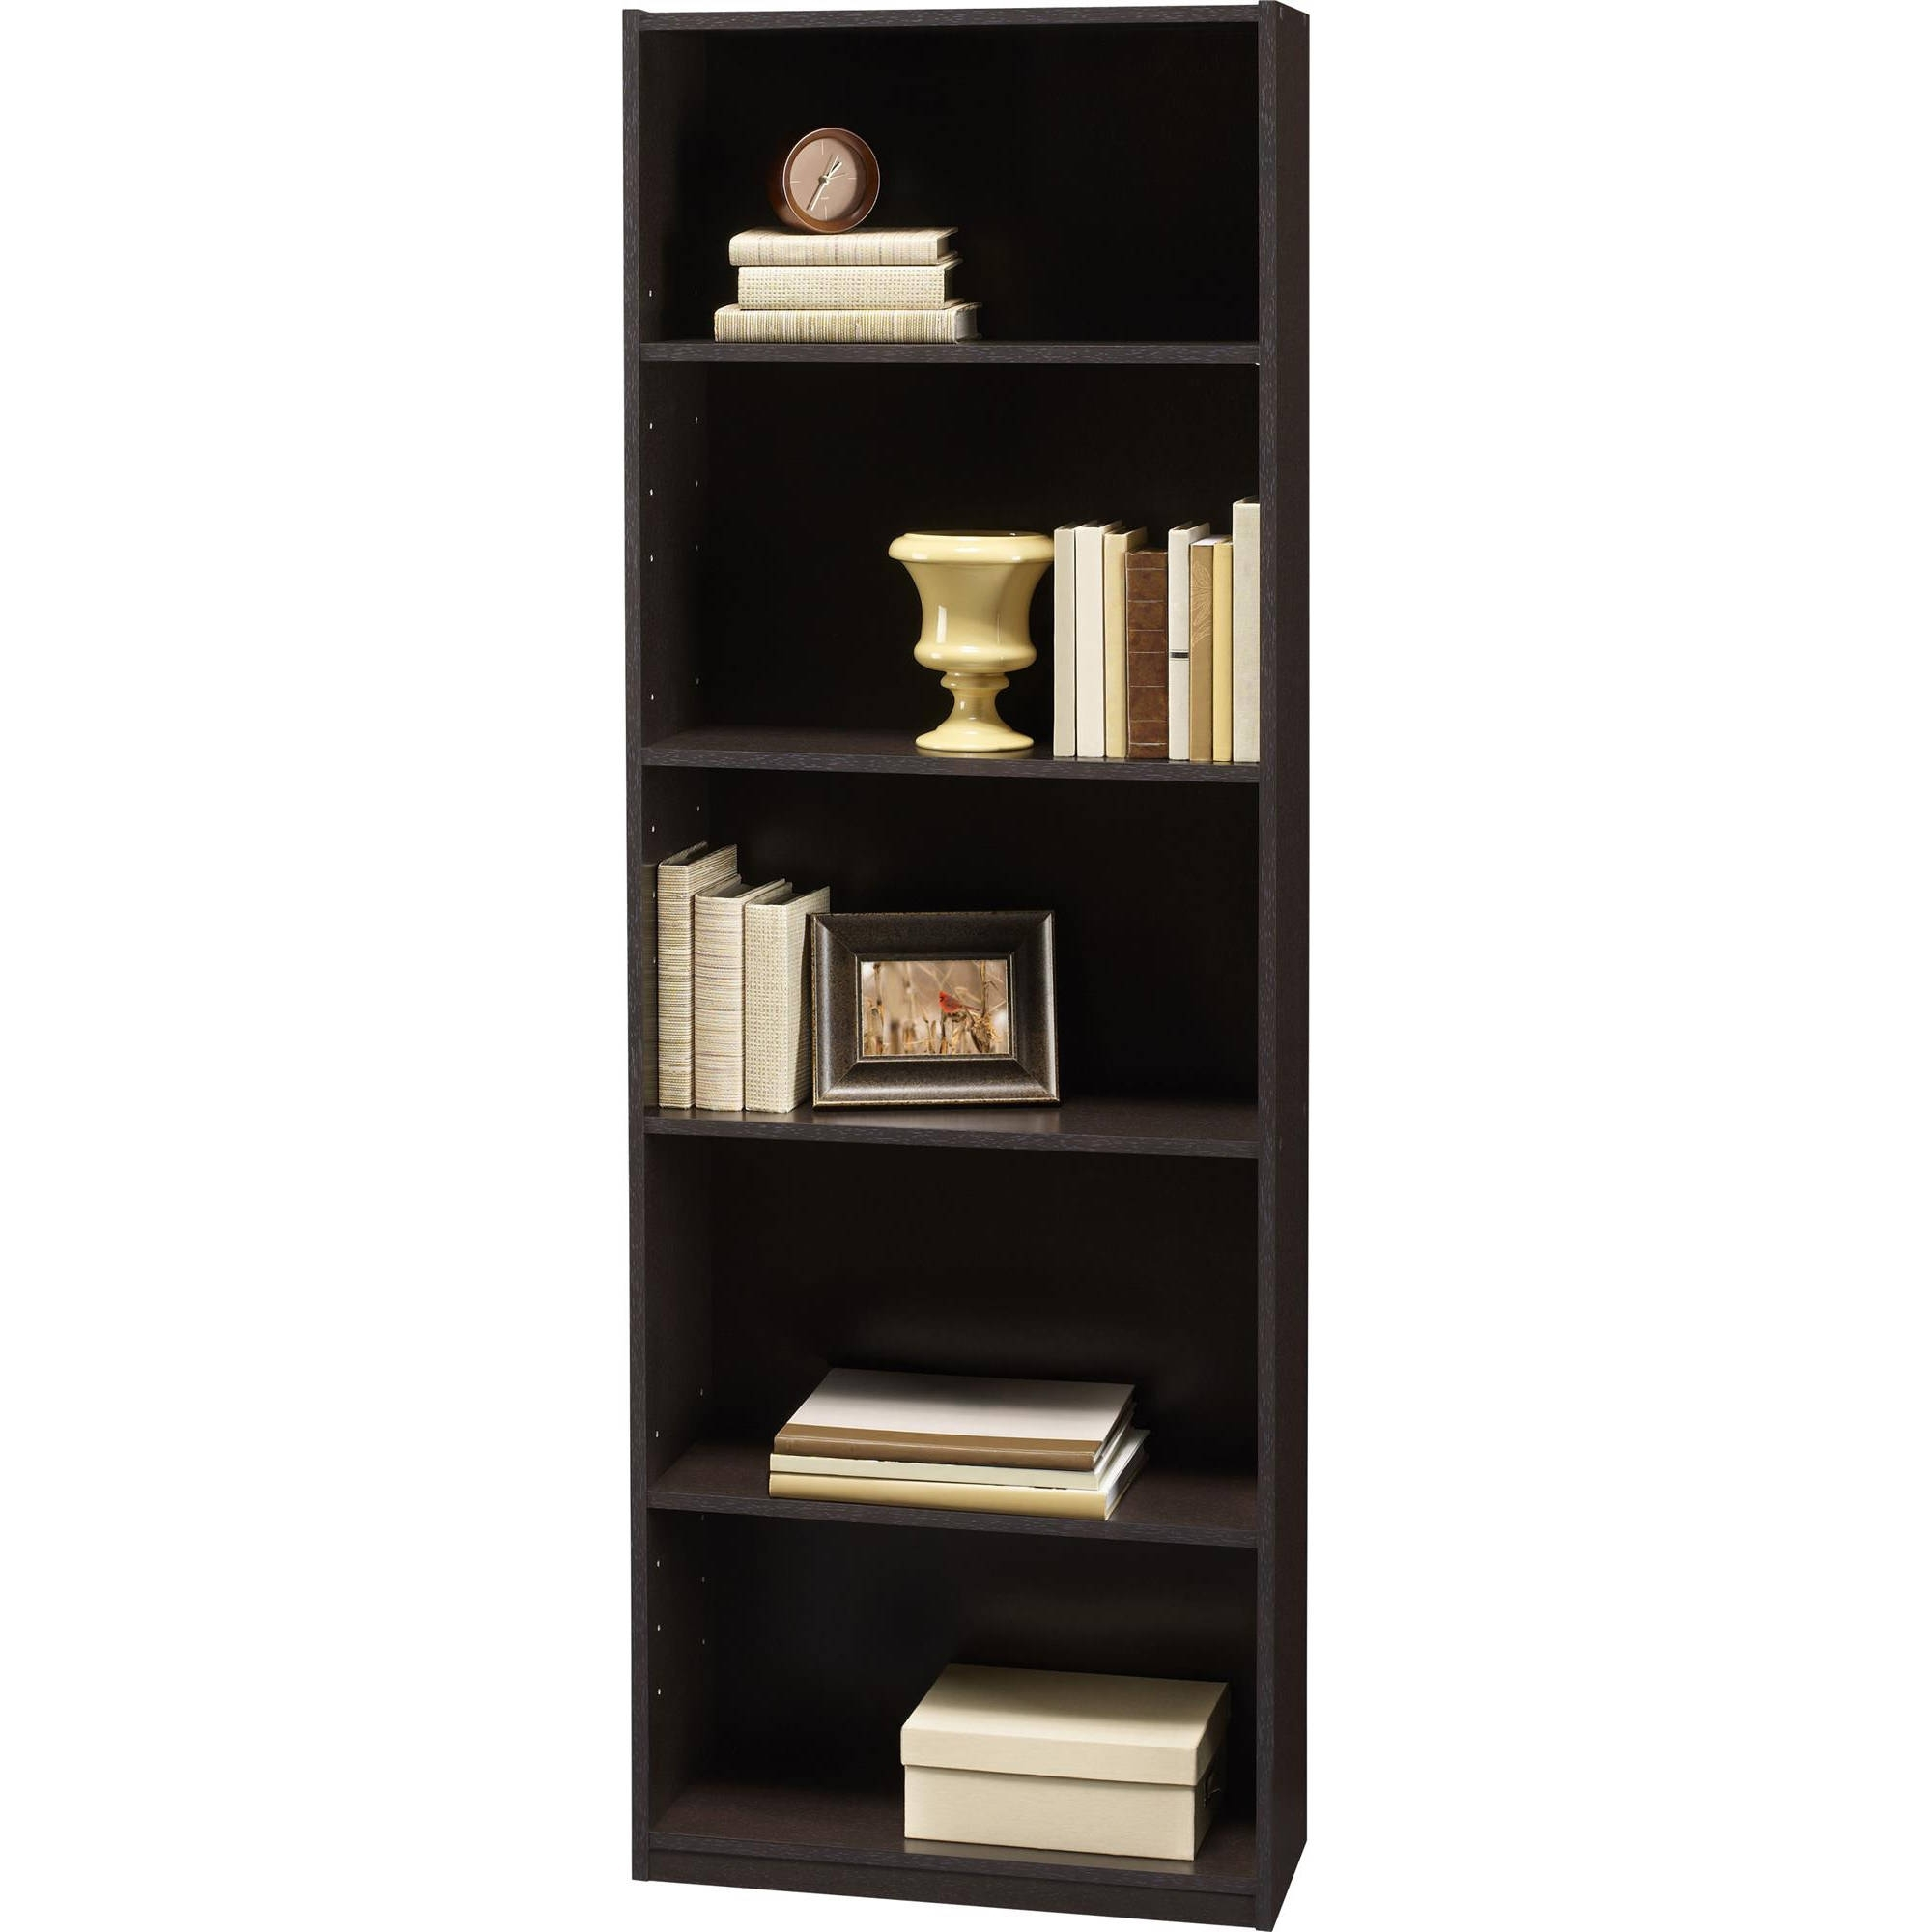 Ameriwood 3 Shelf And 5 Shelf Bookcases (mix And Match) – Walmart Pertaining To Famous Walmart Bookcases (View 5 of 15)